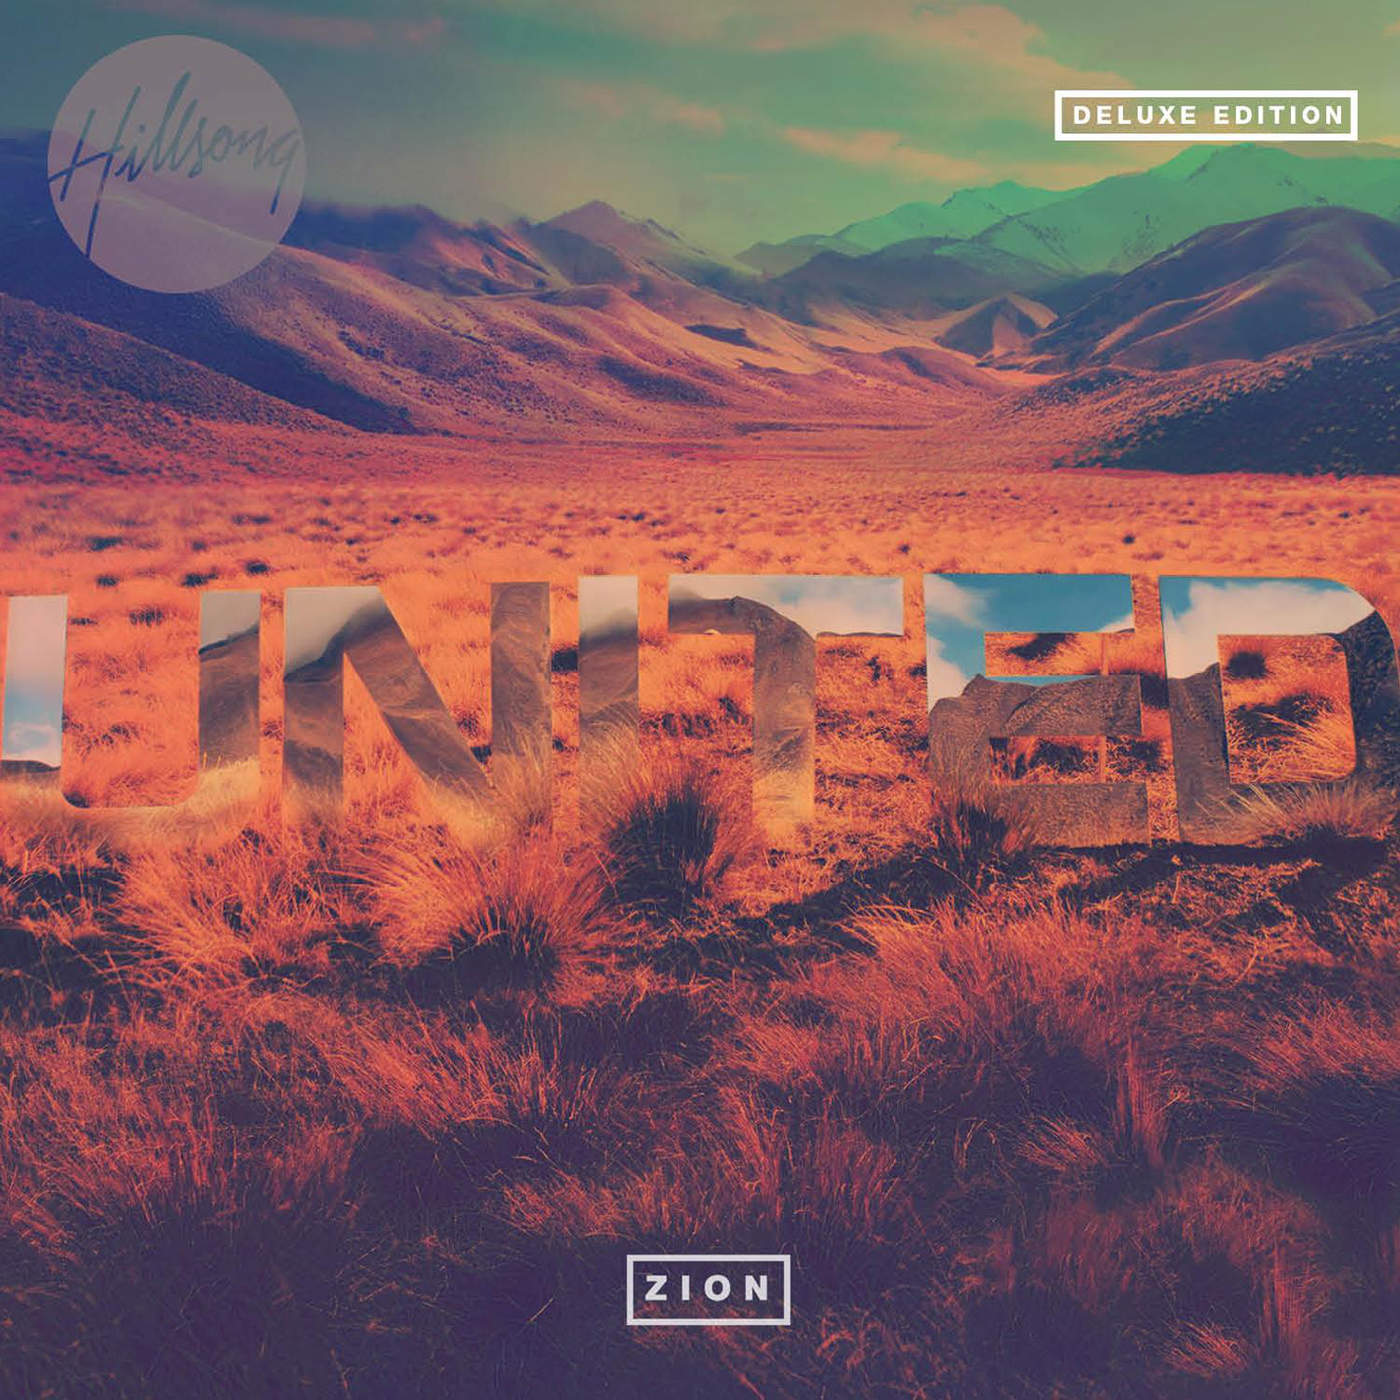 Art for Oceans (Where Feet May Fail) by Hillsong UNITED